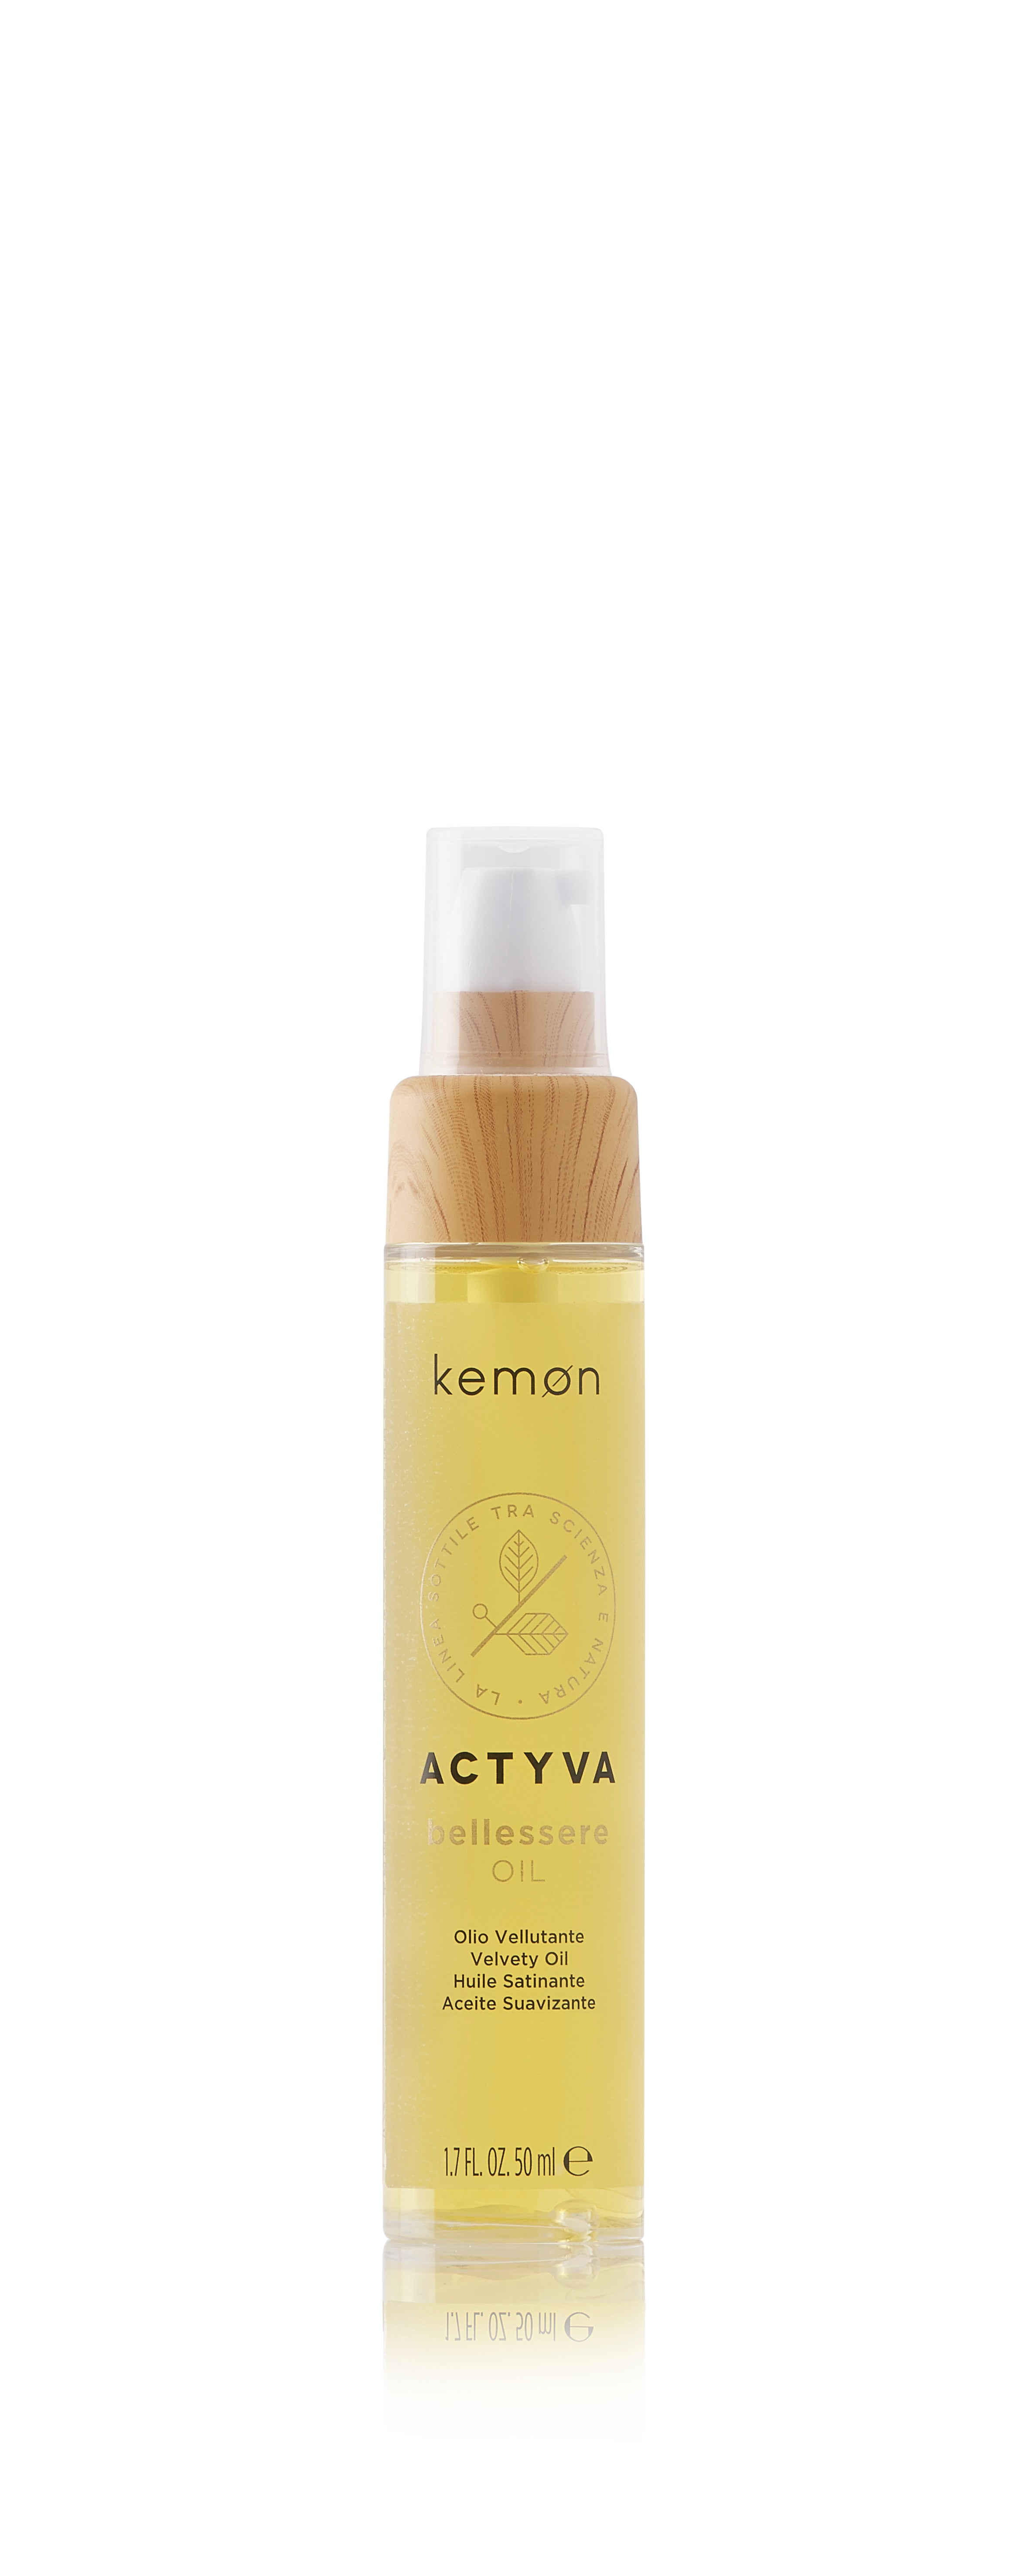 Kemon Actyva BELLESSERE Oil 50ml